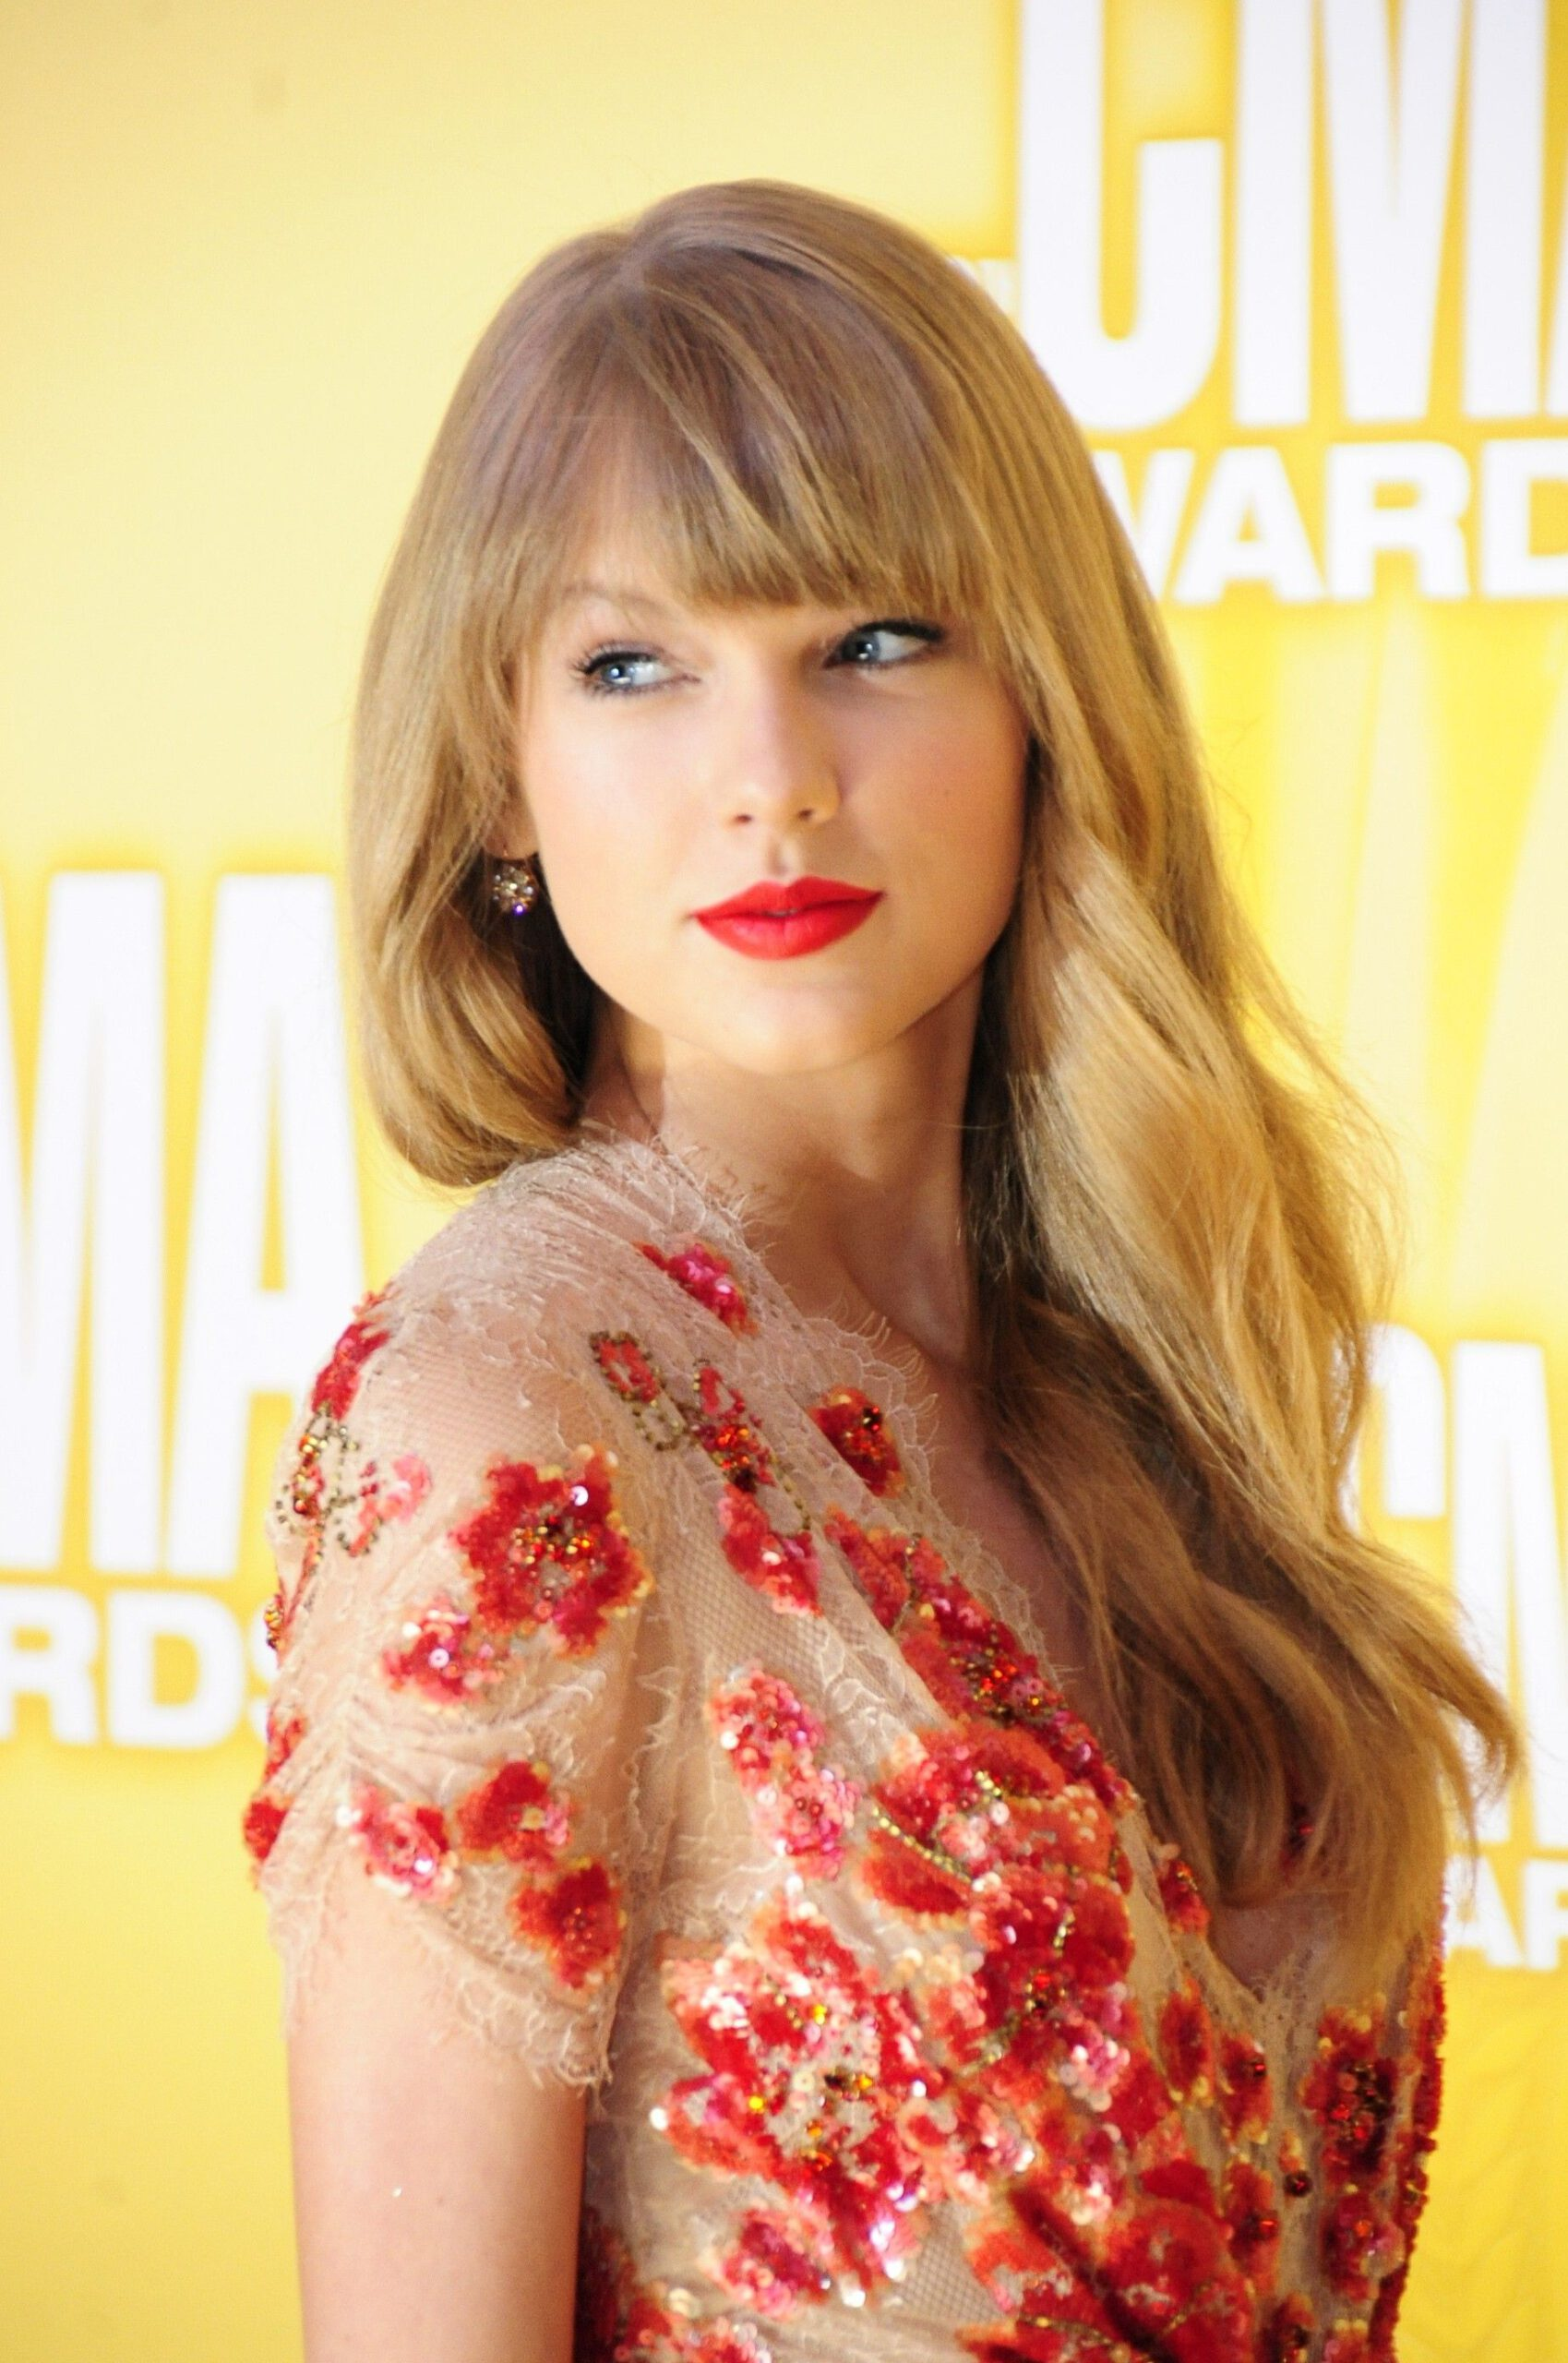 Android phone taylor swift wallpaper scaled